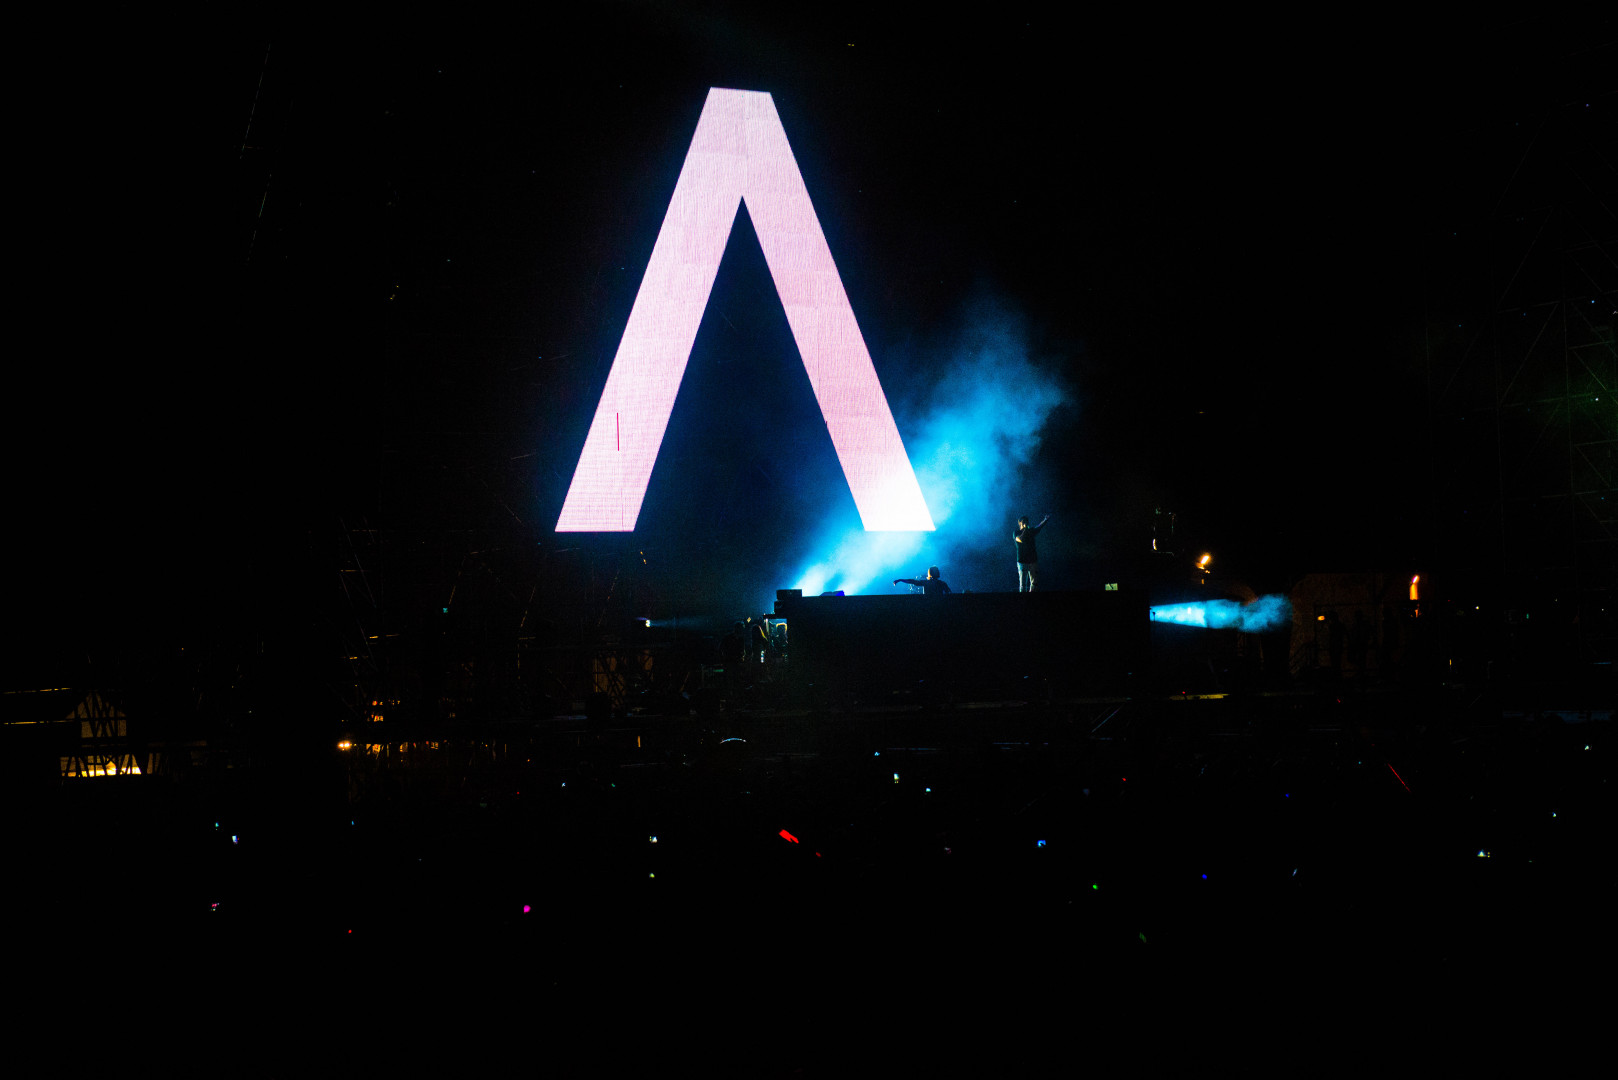 Le chaud d'Axwell ^ Ingrosso a commencé très fort